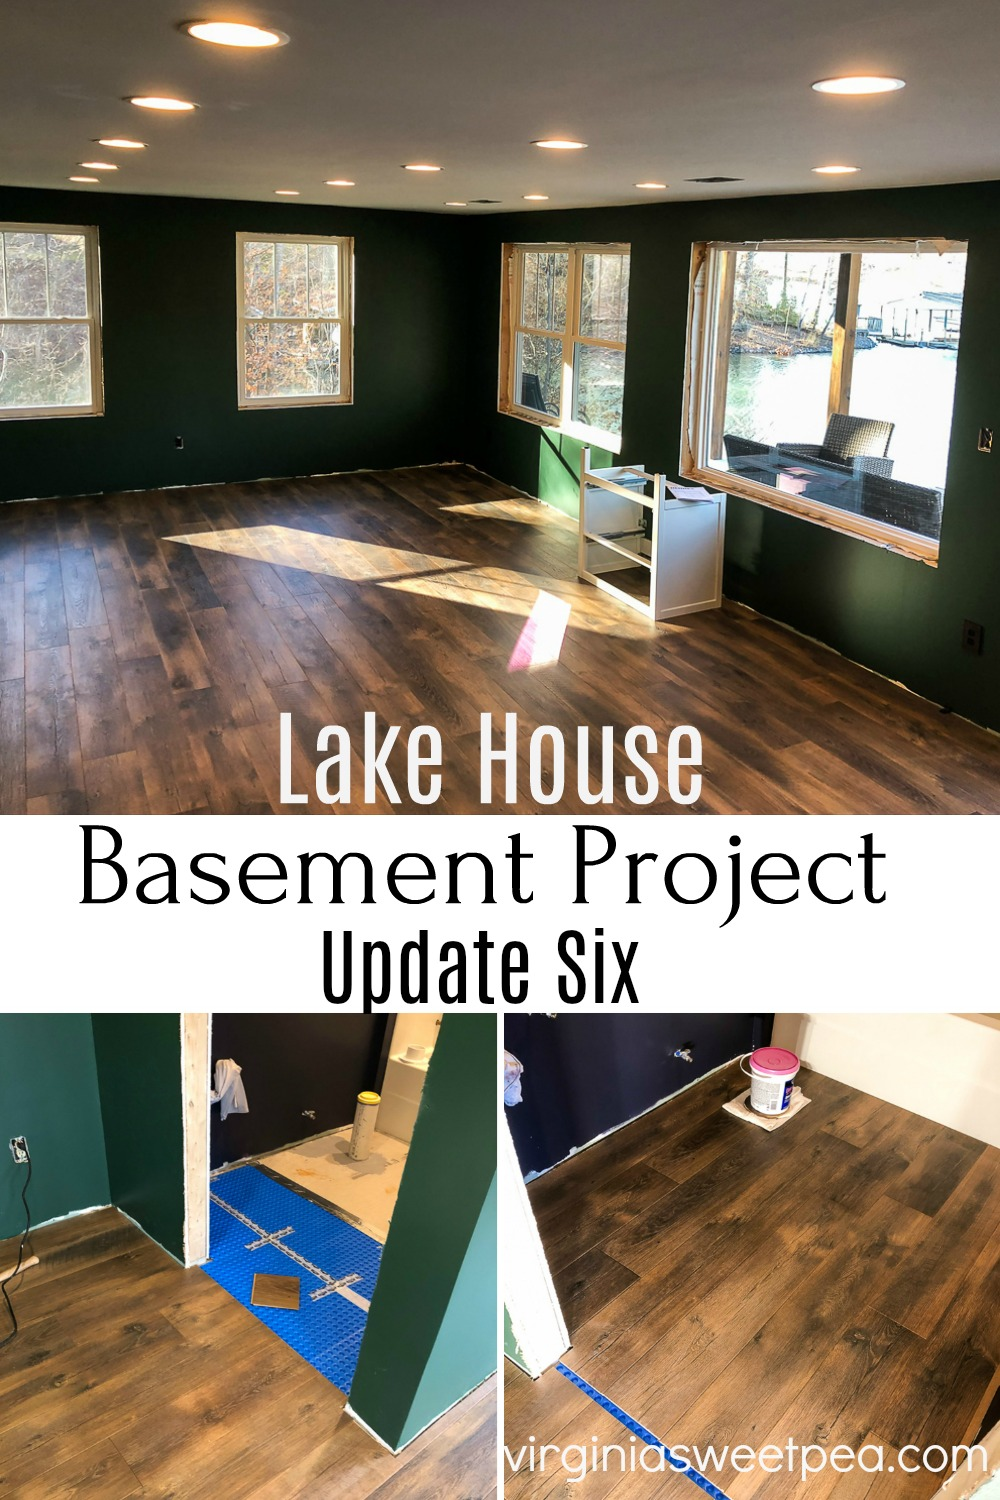 Lake House Basement Project - Update Six - An unfinished basement is being transformed into a family room, bathroom, and bedroom.  In this update, the flooring is completed, canned lights are installed and an Ikea sink is assembled.  #basementproject #finishingabasement #smithmountainlake #virginiasweetpea via @spaula